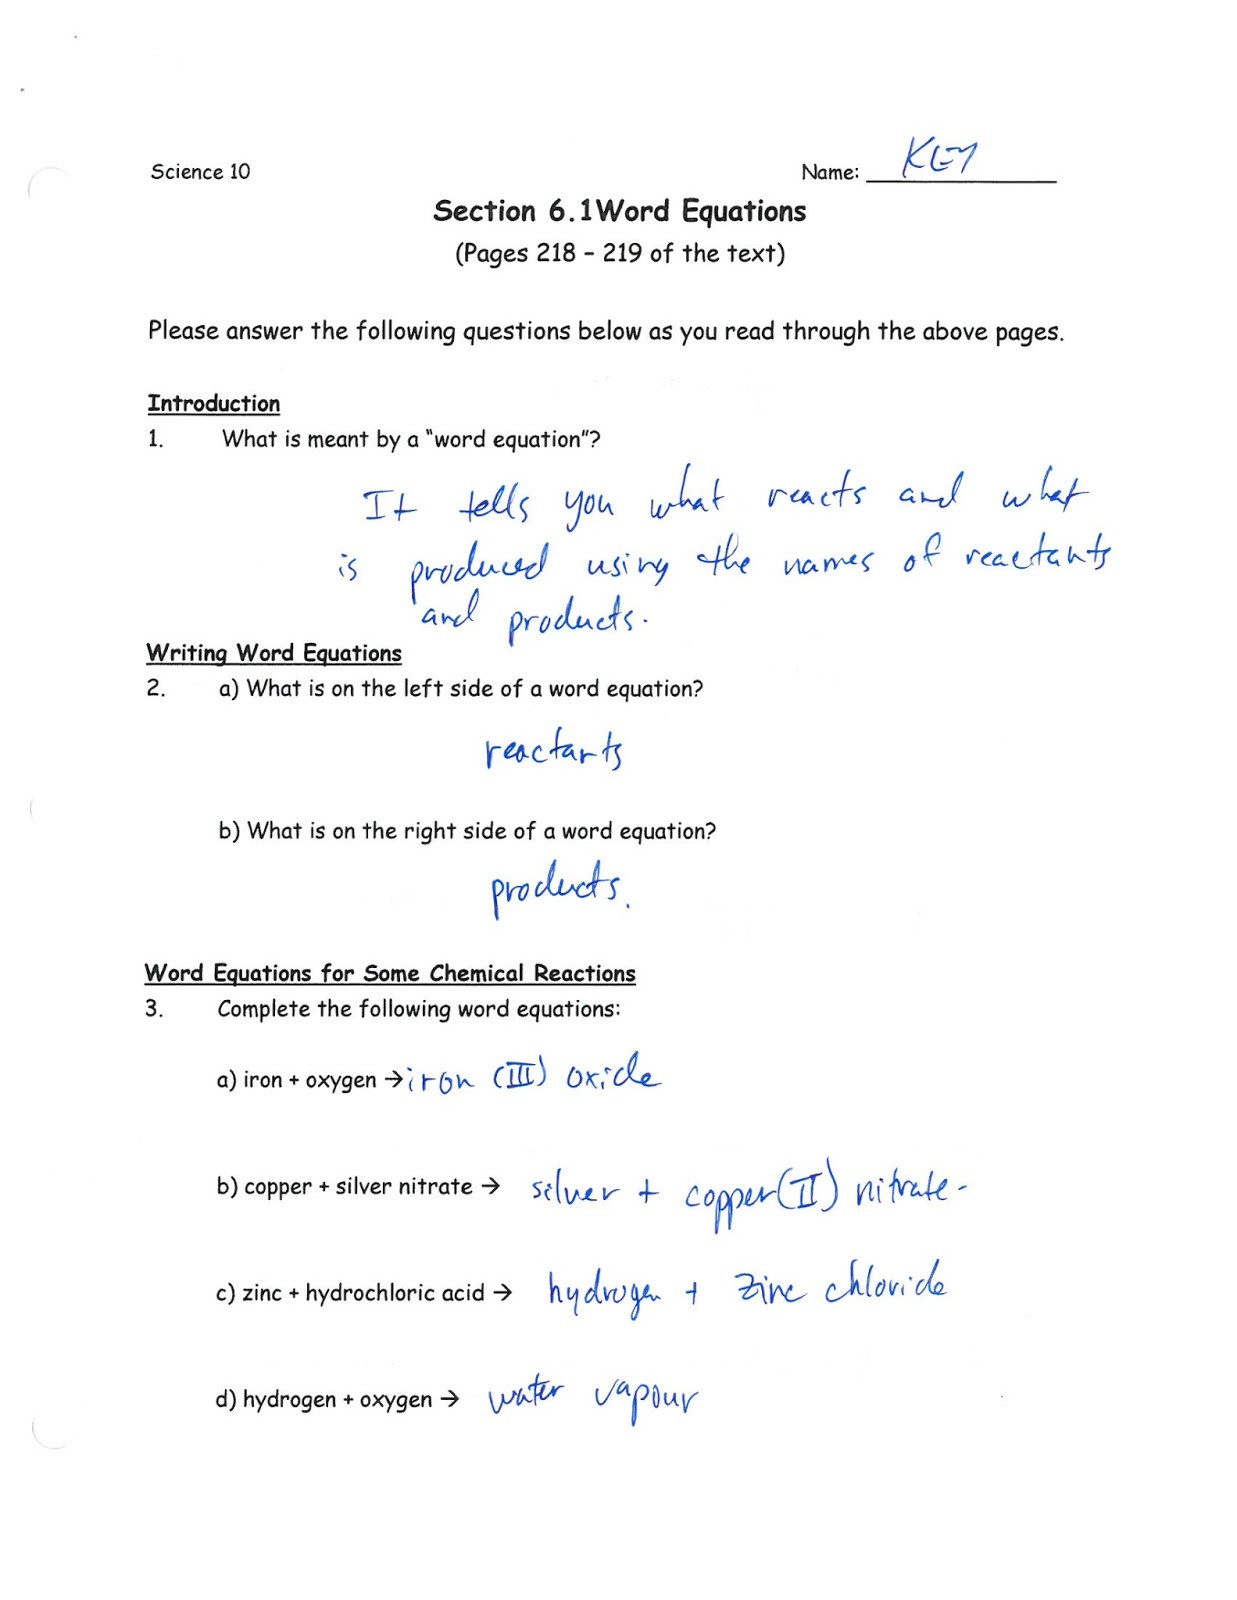 Reading Chemical Equations Worksheet